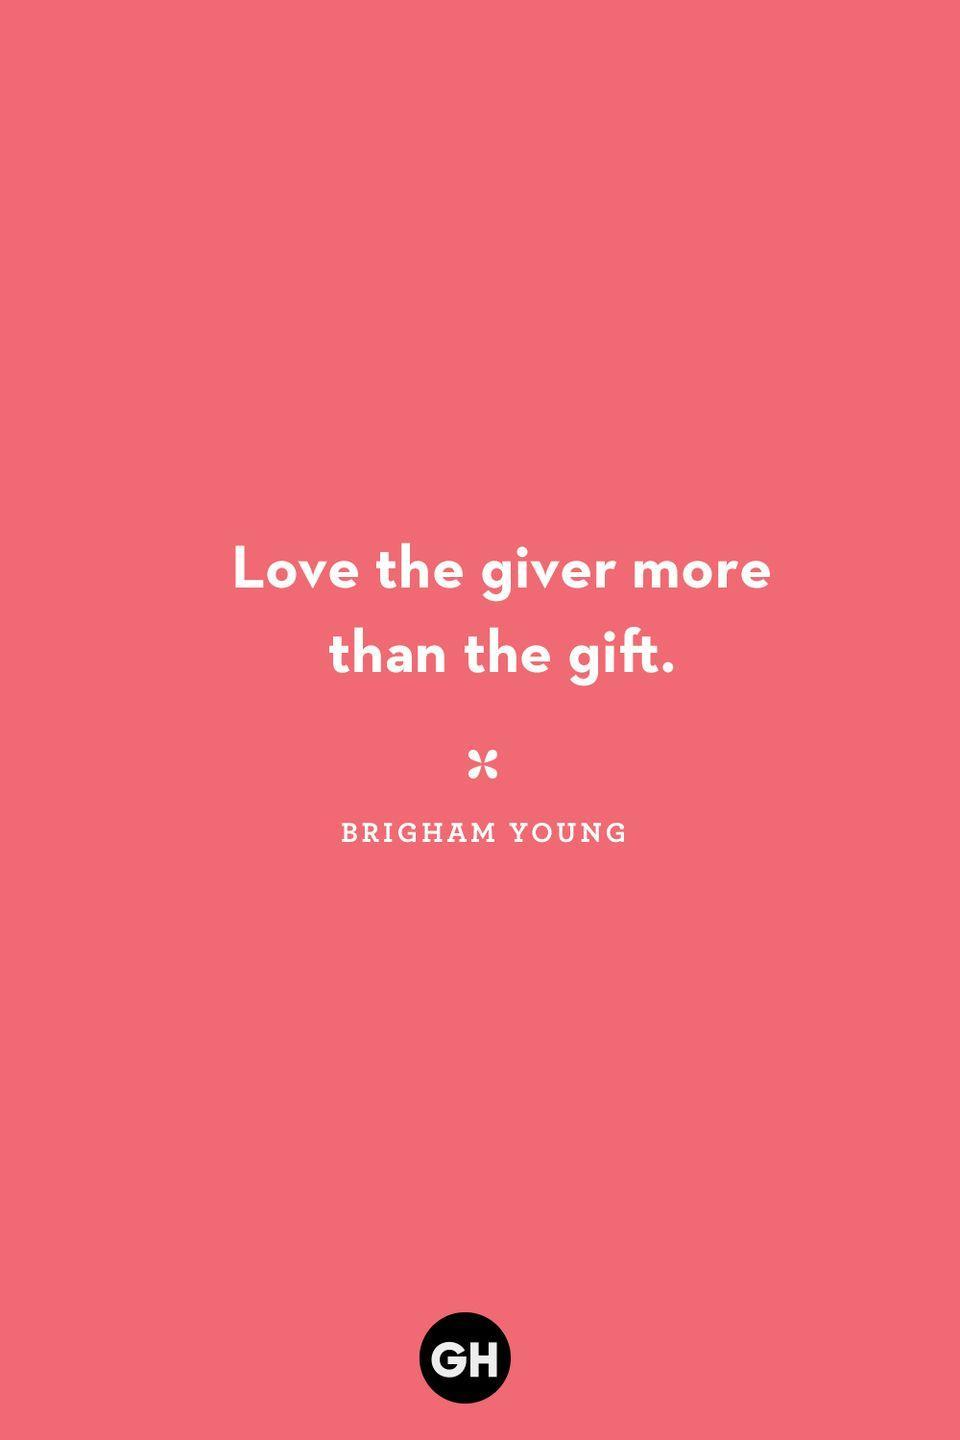 <p>Love the giver more than the gift.</p>